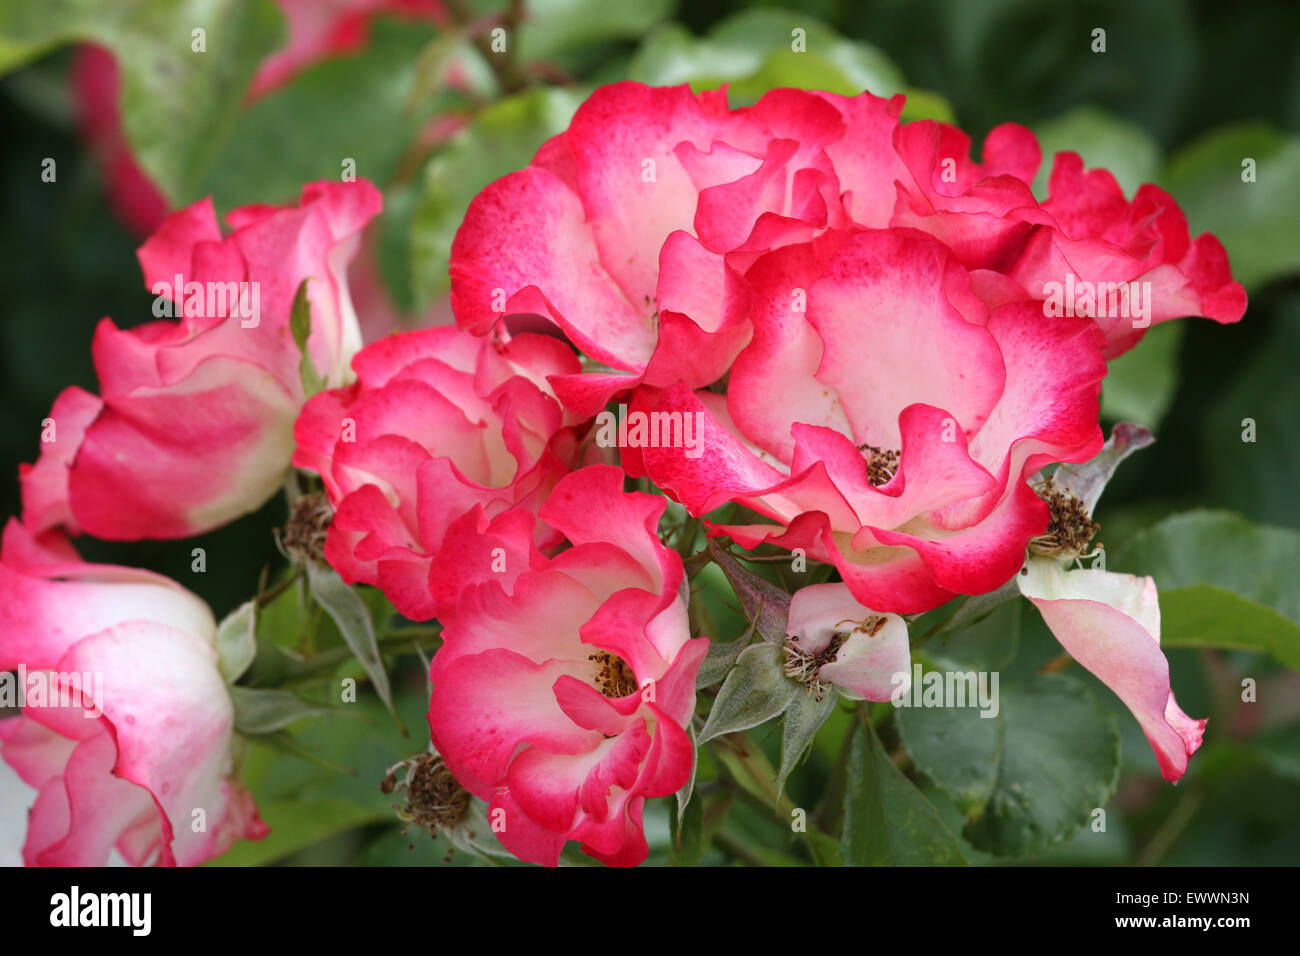 Red white rose flowers Stock Photo